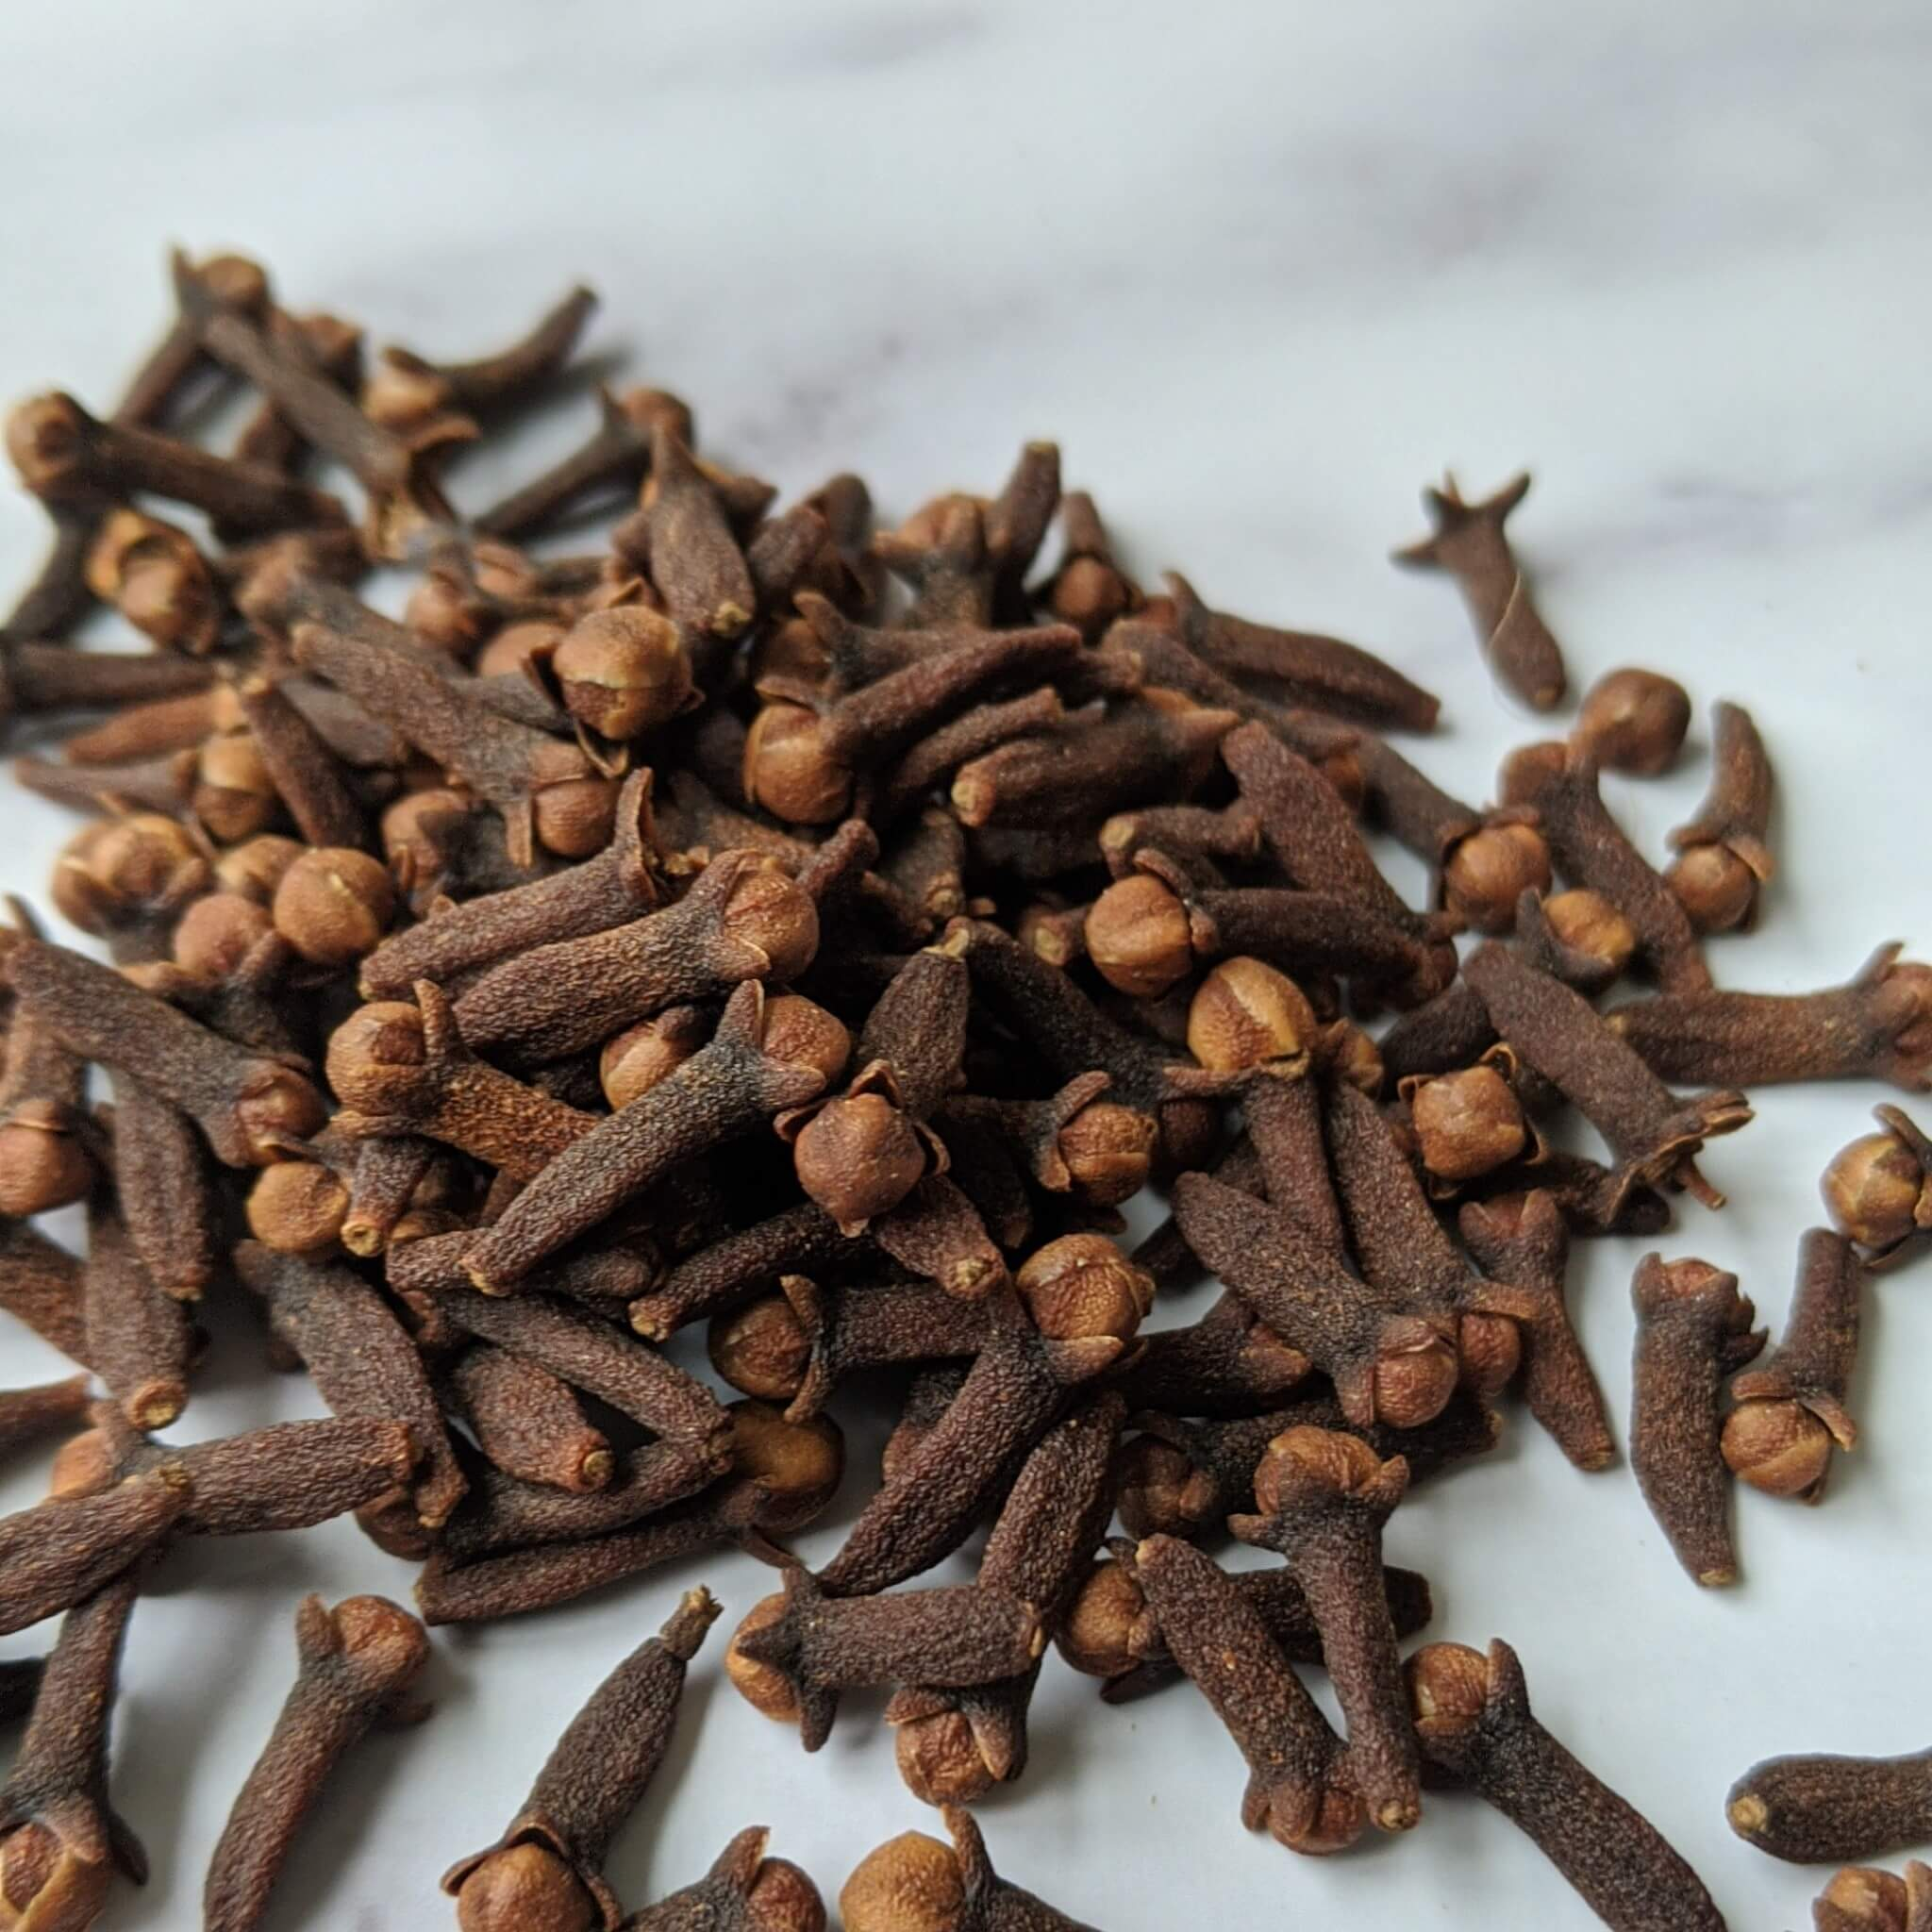 Cinnamon Tree Organics single origin whole cloves